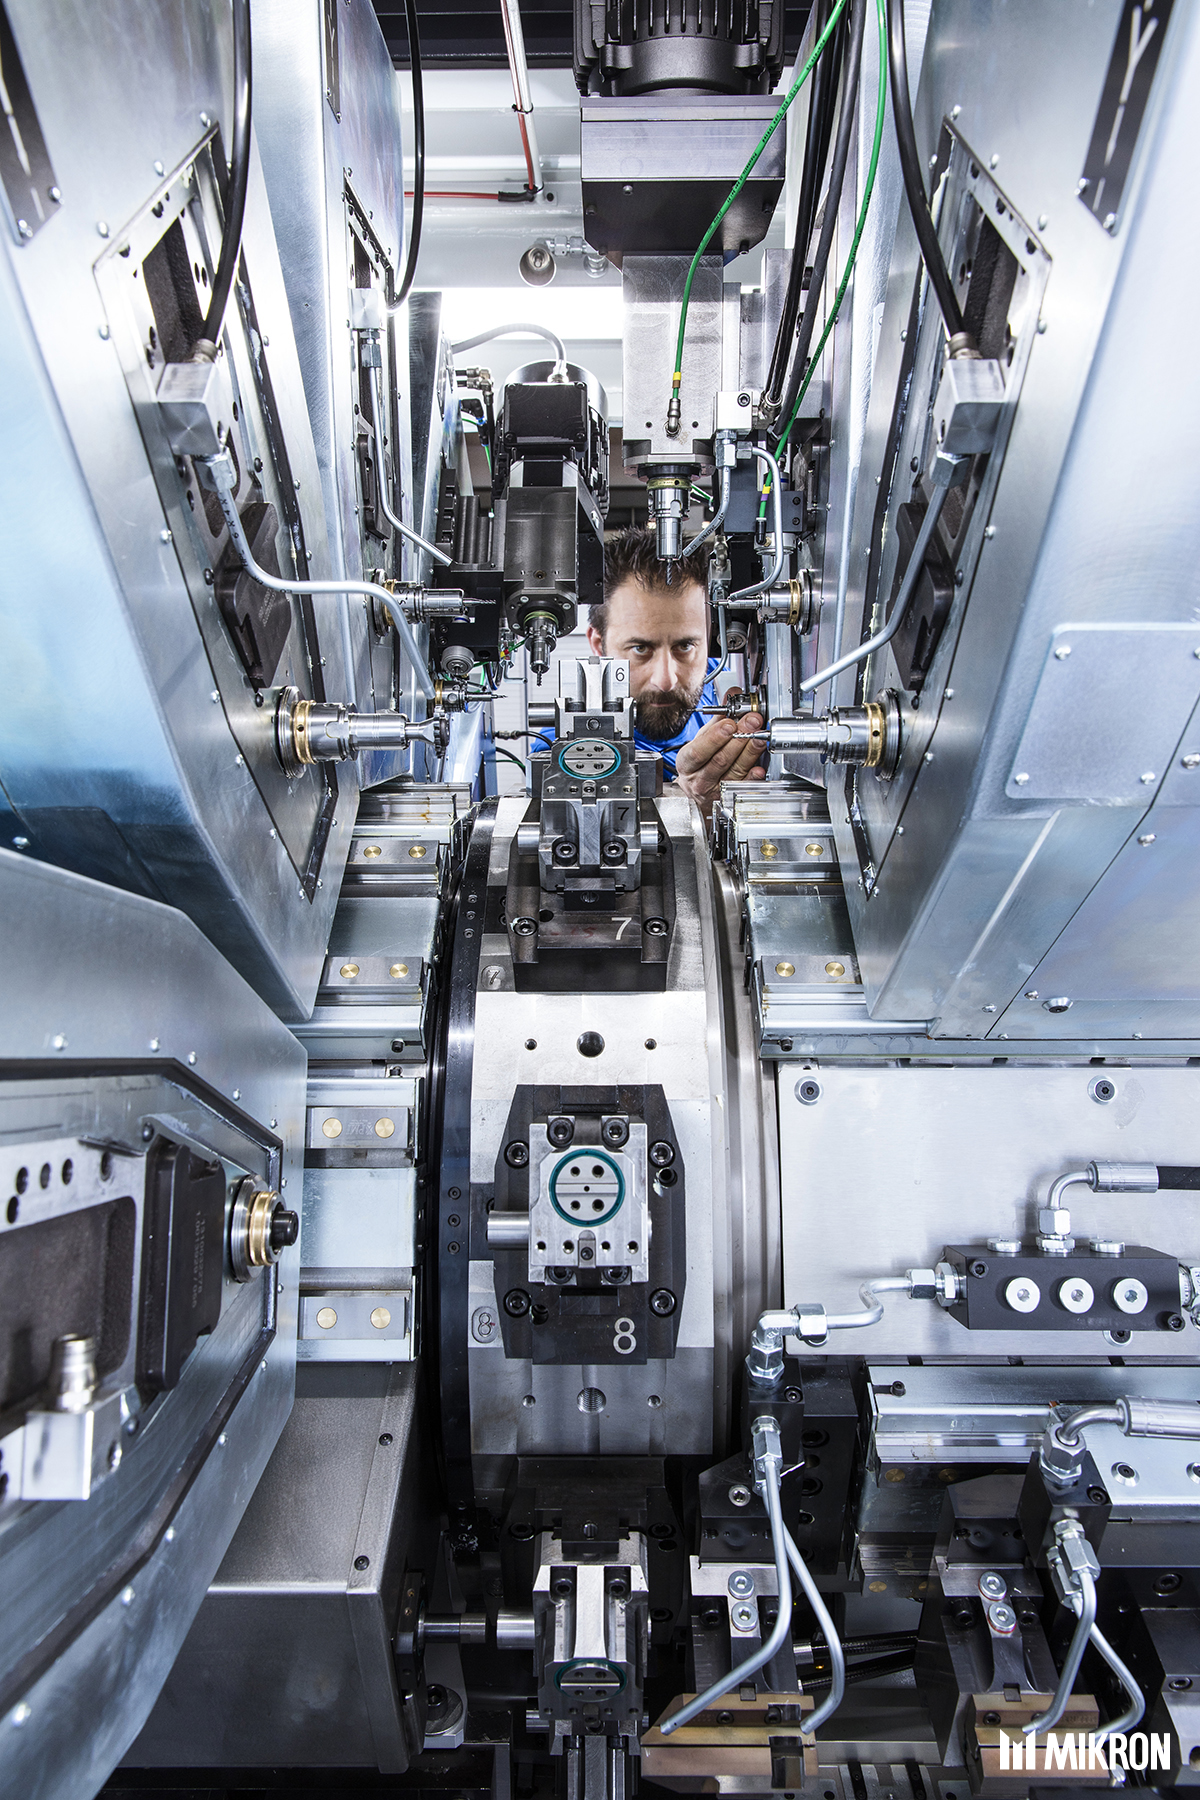 <b>Mikron VX</b><br/>Machining on 6 sides, from bar,wire or blank. Full CNC high-precision rotary transfer machinewith10 or 12 workstations forvariable production batch sizes